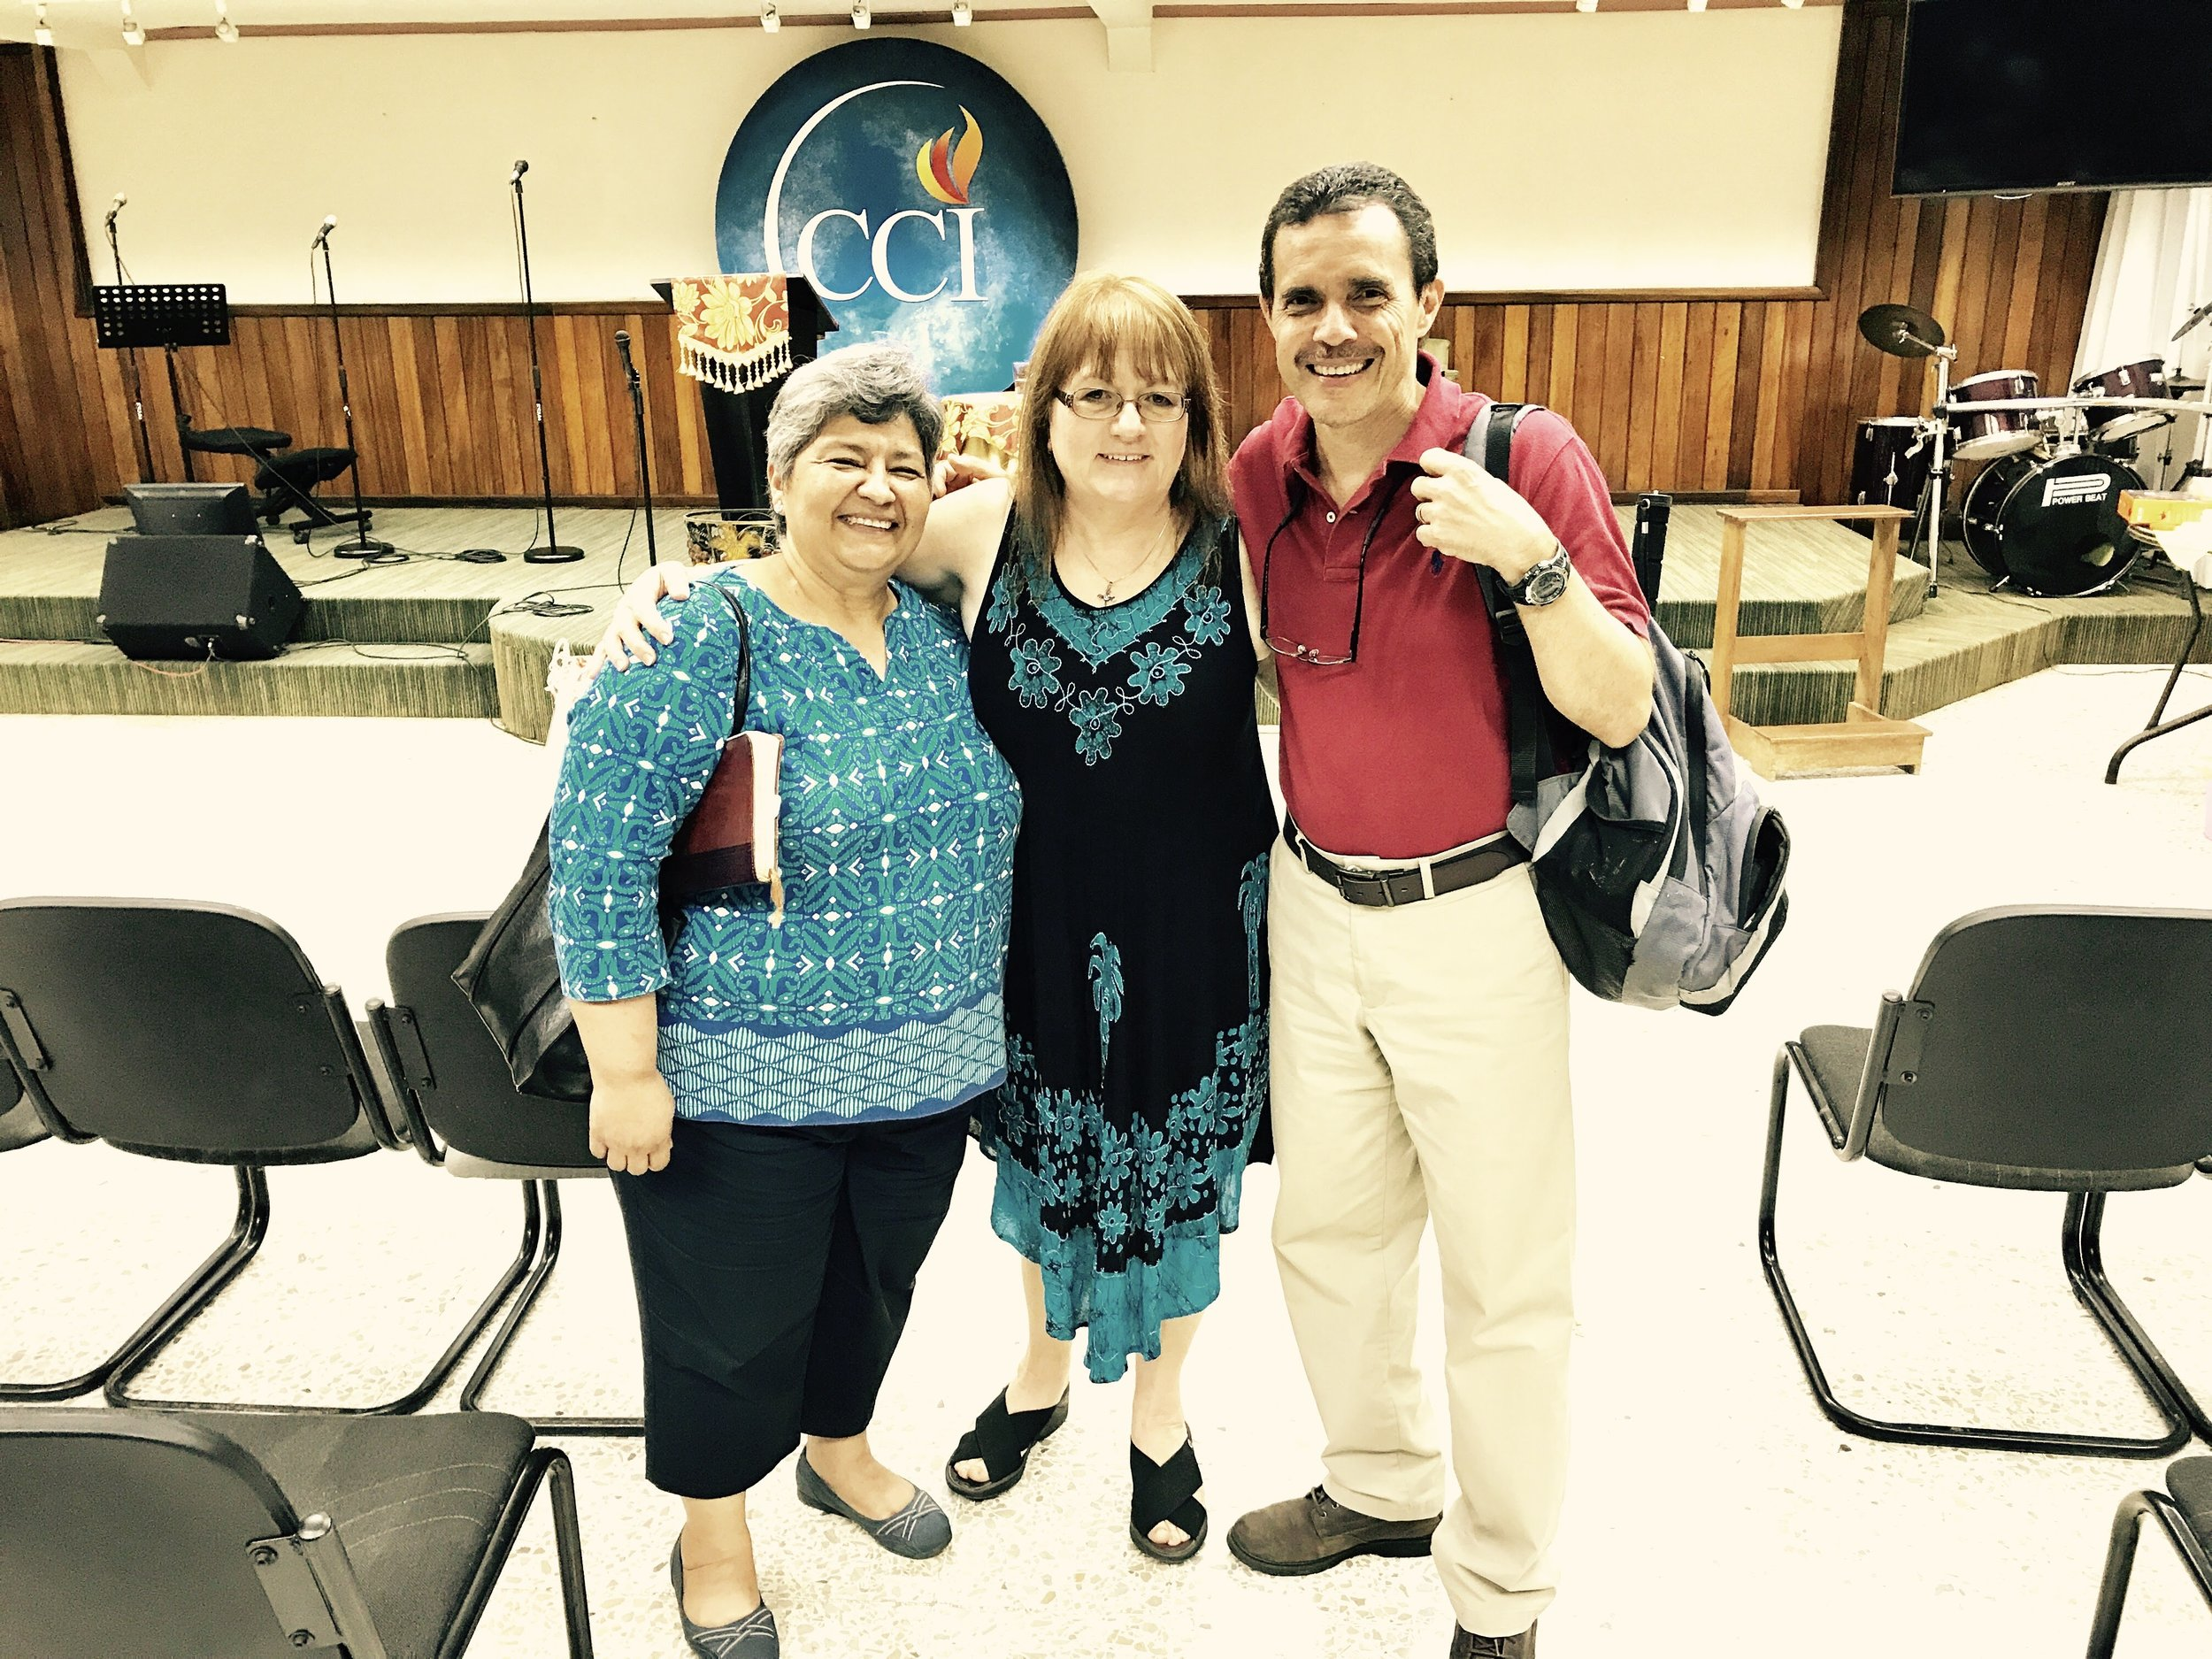 Betty Moffitt with a couple from La ceiba after the night service.